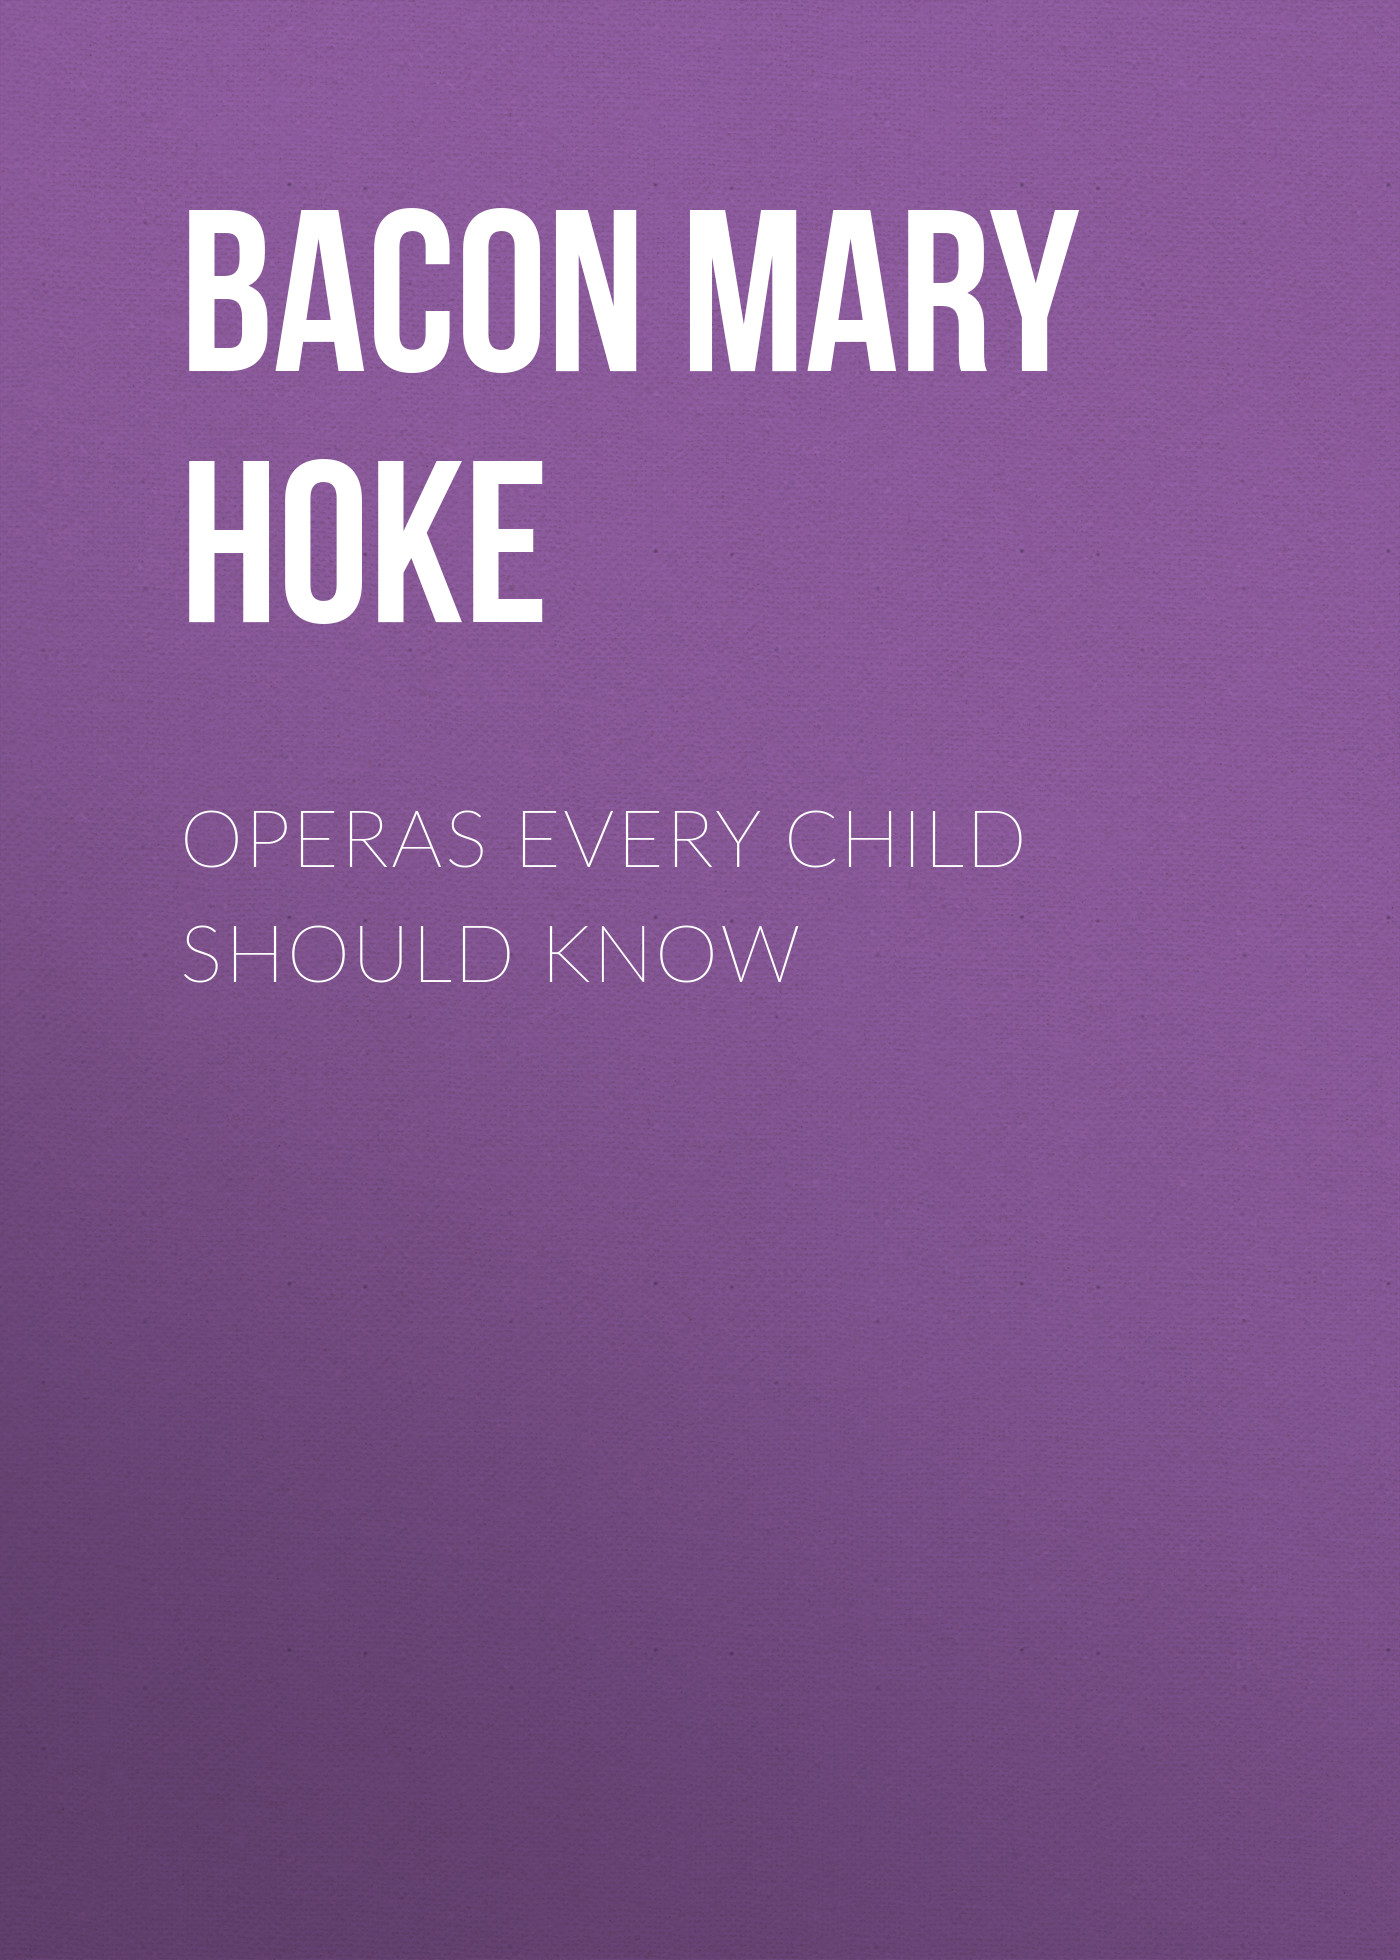 Bacon Mary Schell Hoke Operas Every Child Should Know mary schell bacon songs that every child should know a selection of the best songs of all nations for young people